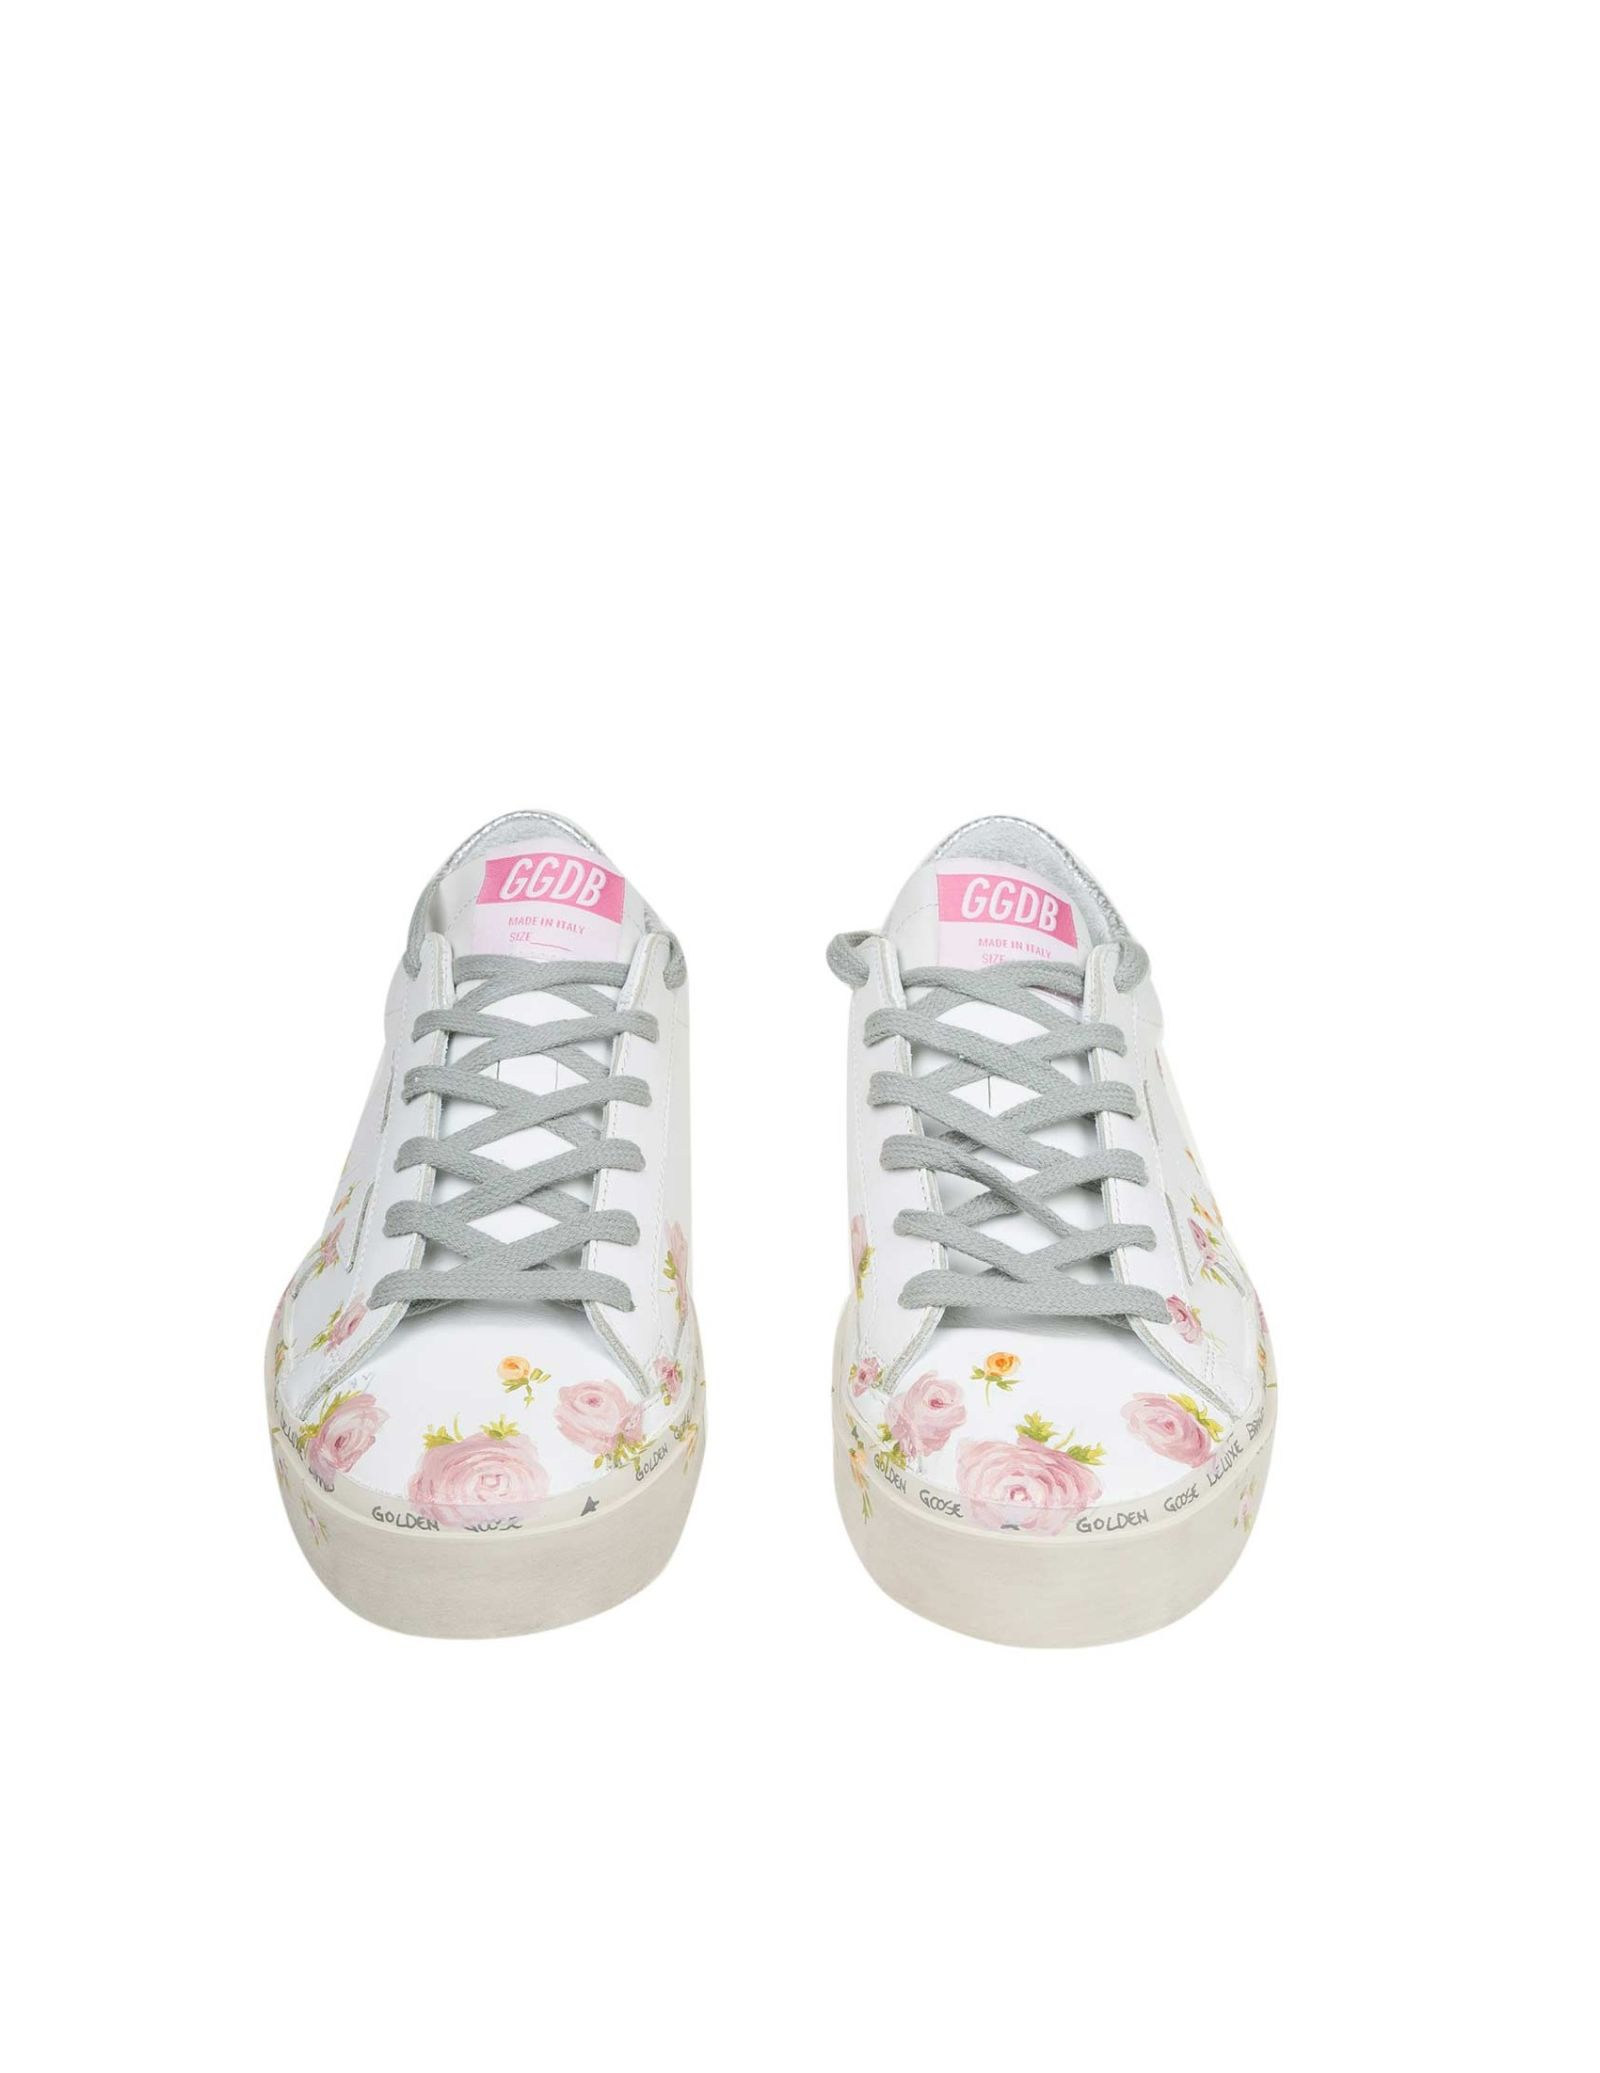 259def4ecd62 ... Golden Goose Hi Star Sneakers In White Leather With Floral Print -  White ...